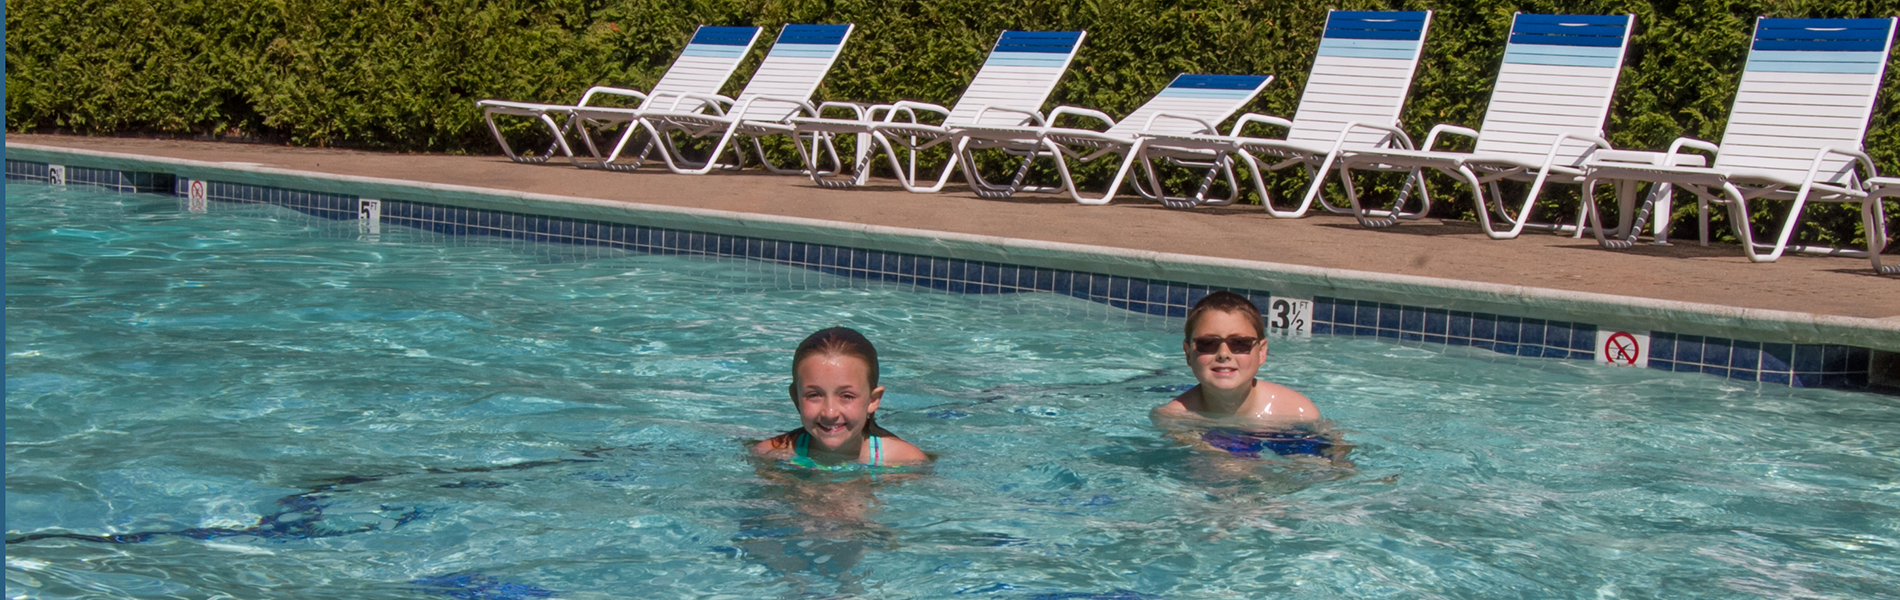 Photo of Kids Enjoying the Pool at the Bar Harbor Motel